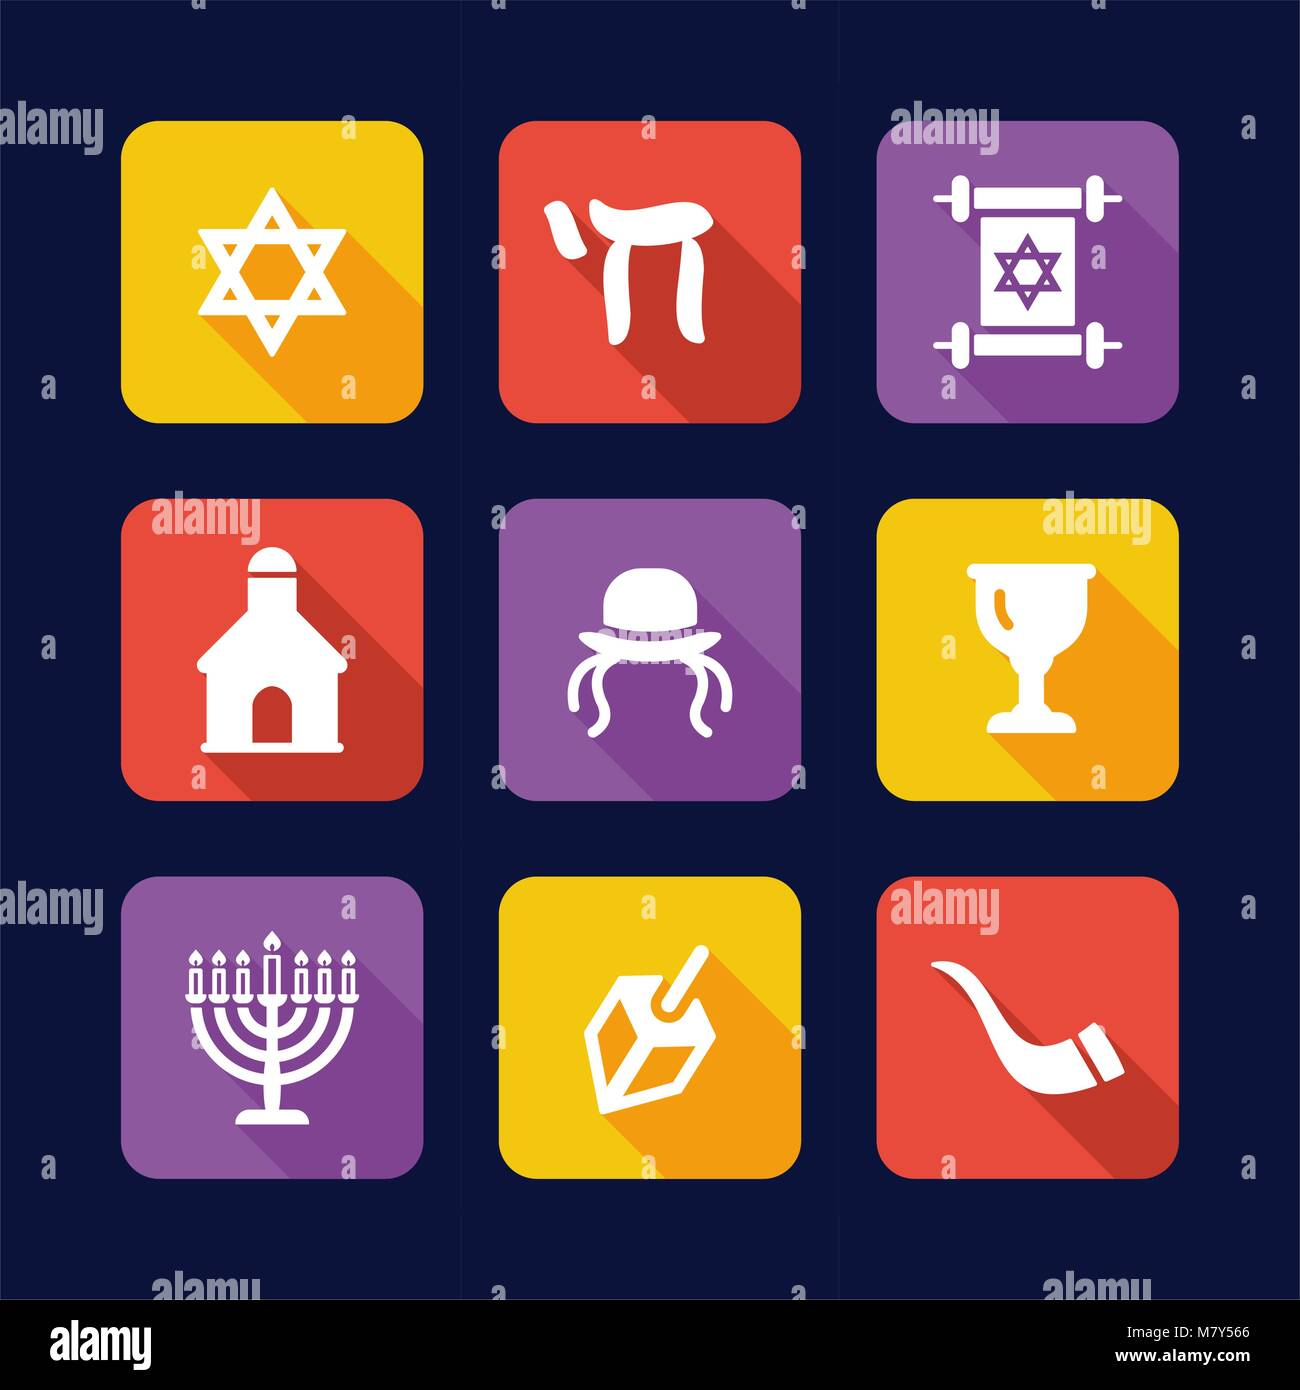 Judaism Icons Flat Design - Stock Vector